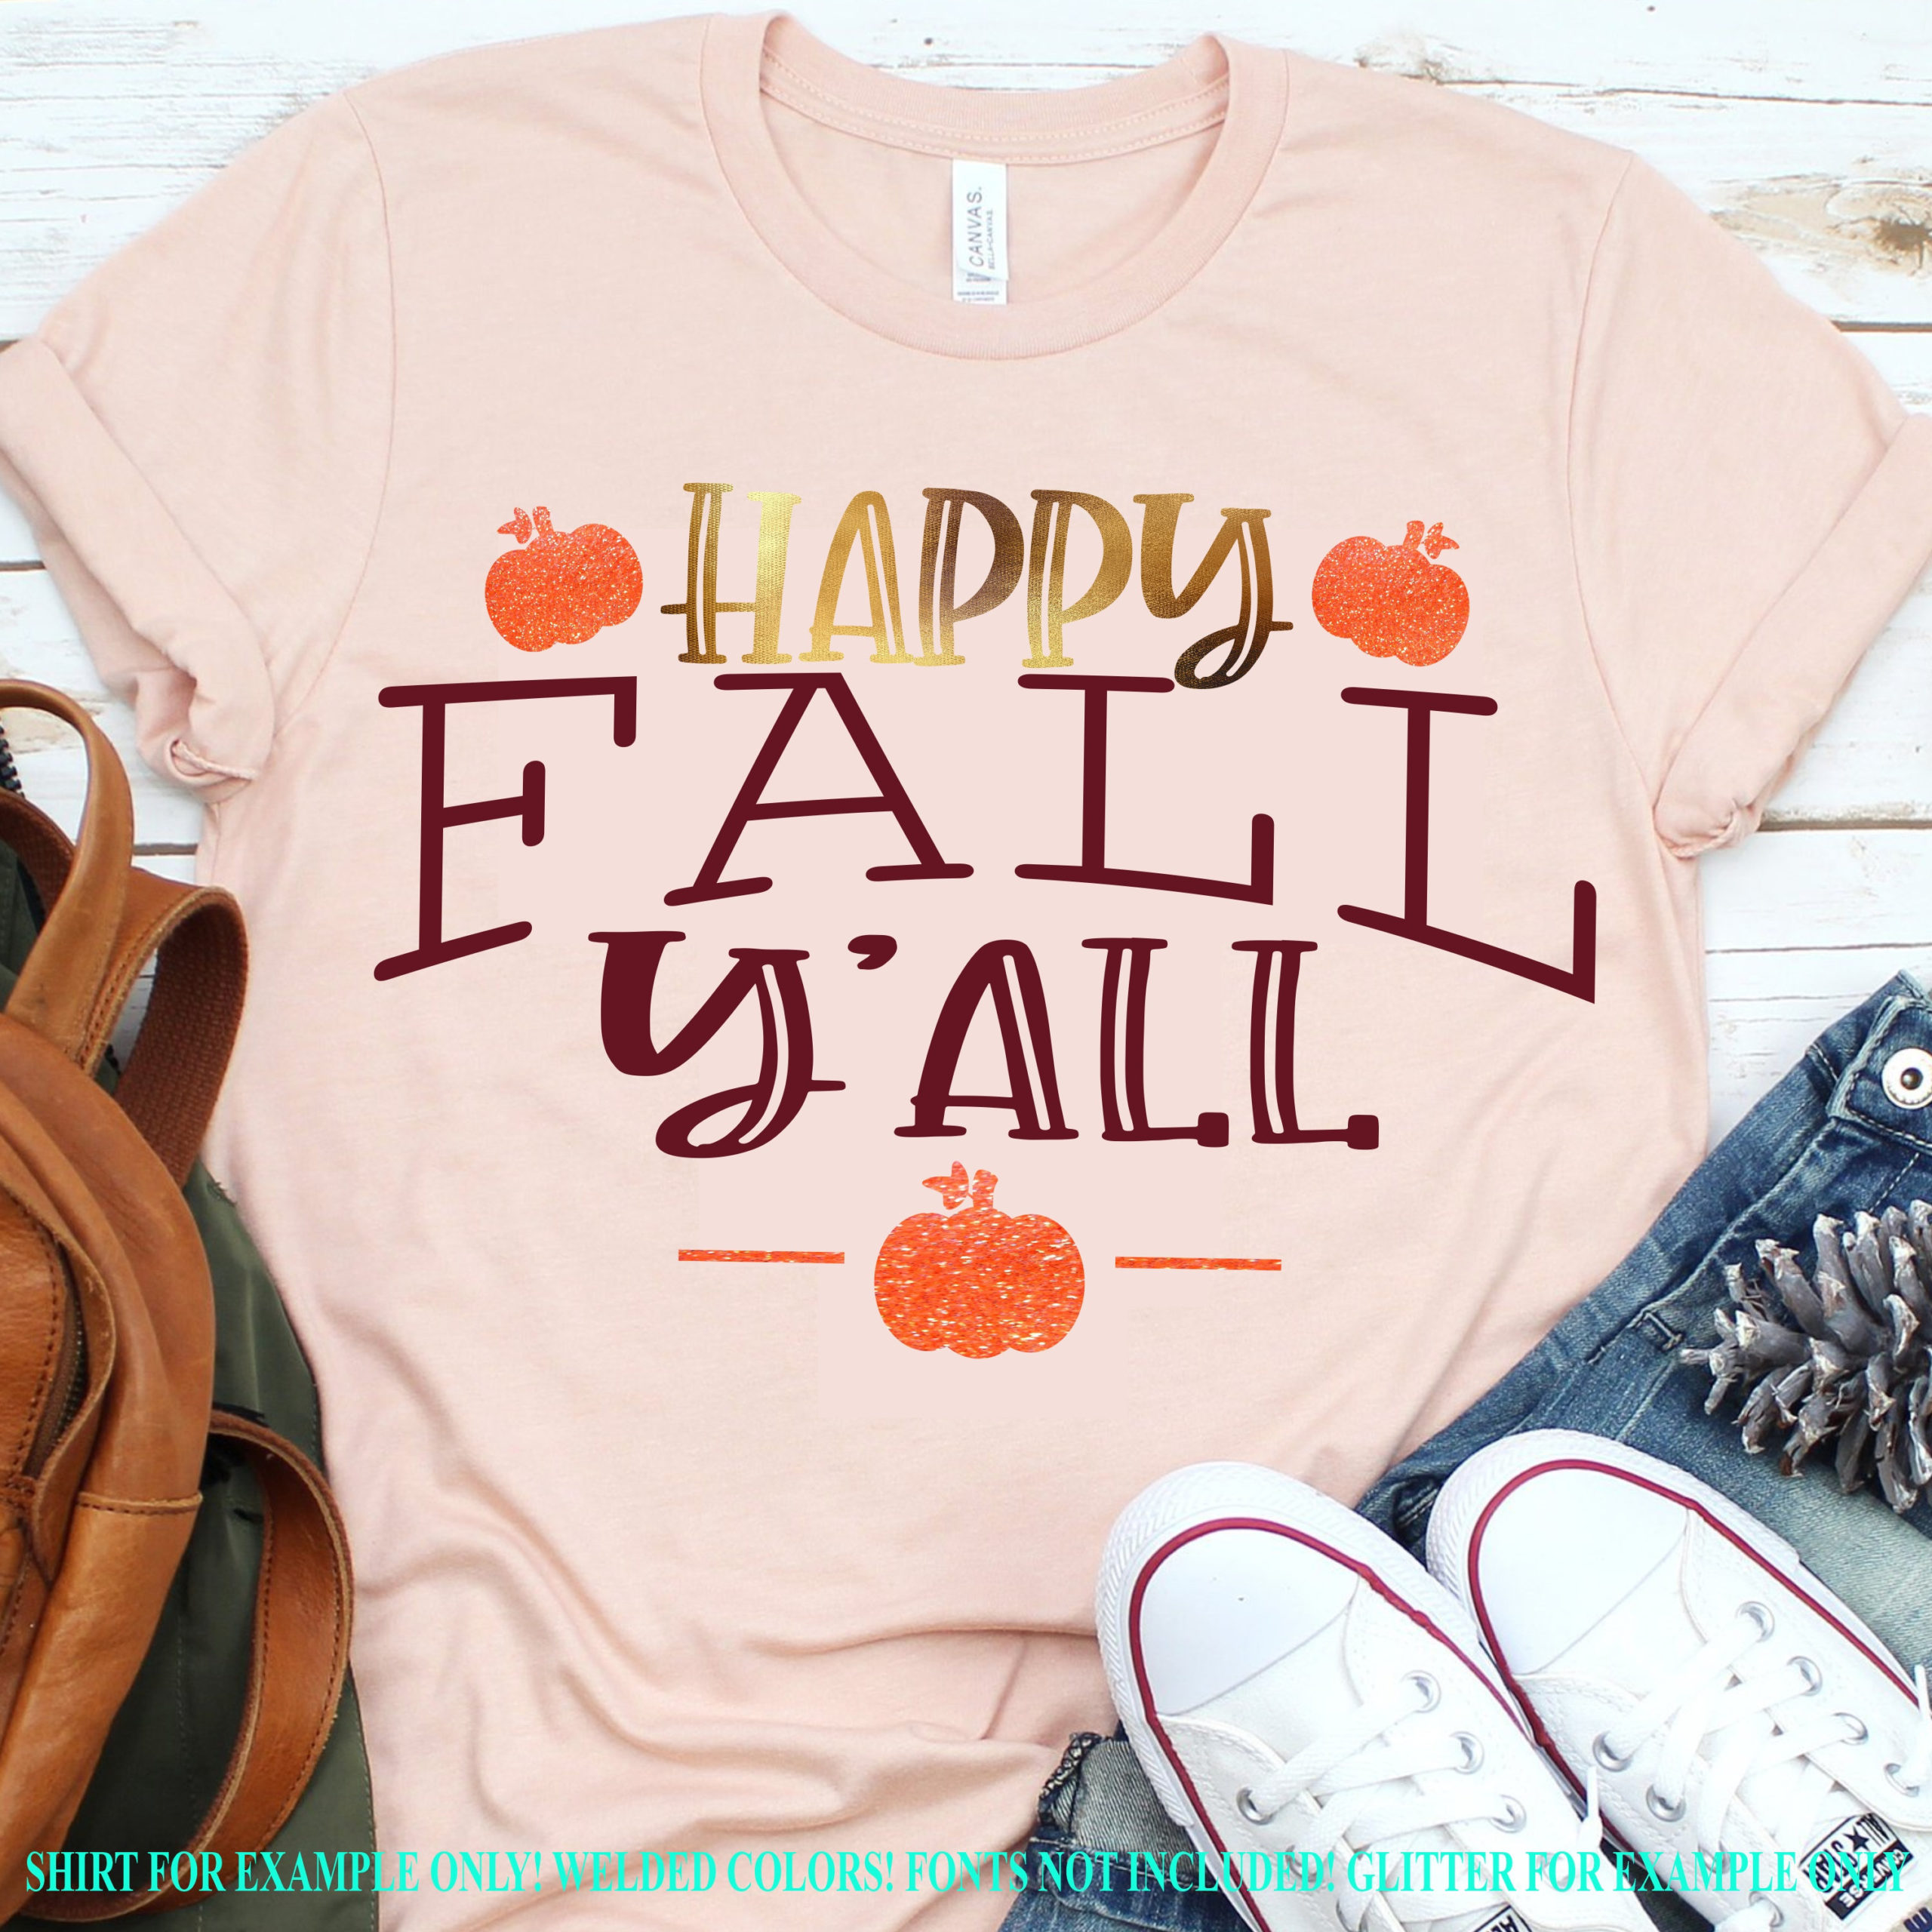 Happy-fall-yall-svgpumpkin-svg-falling-leaves-svg-fall-svg-pumpkins-svg-sweater-weather-svg-fall-svg-designcricut-svgsvg-for-mobile-5f6f70f6